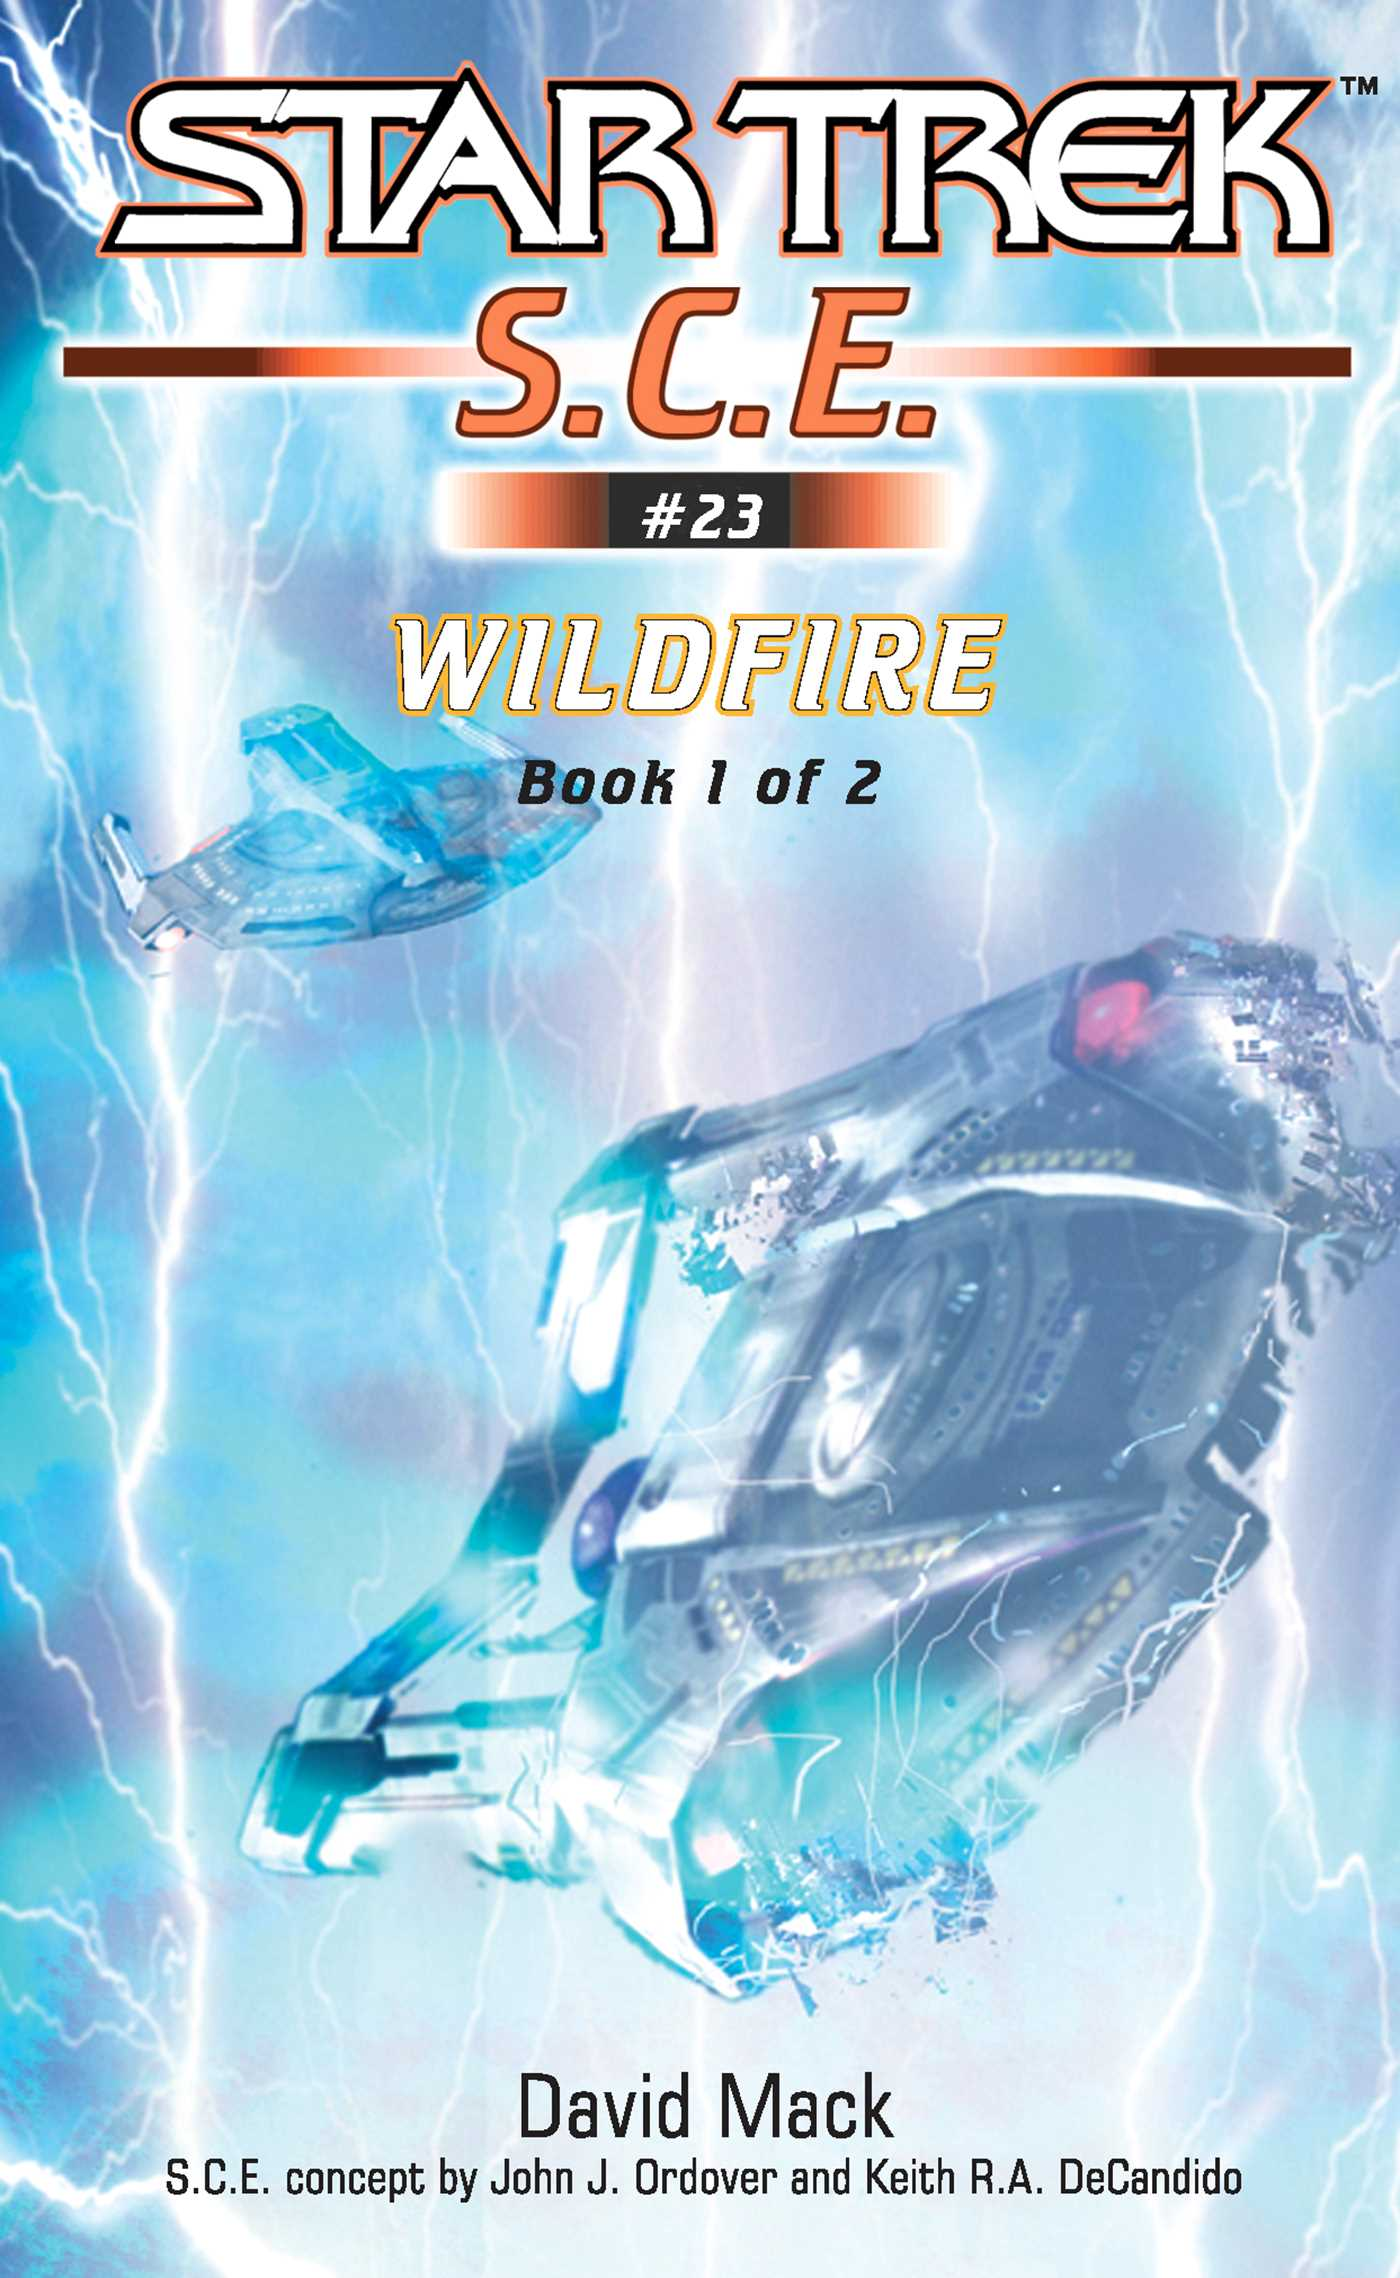 Wildfire book 1 9780743456784 hr